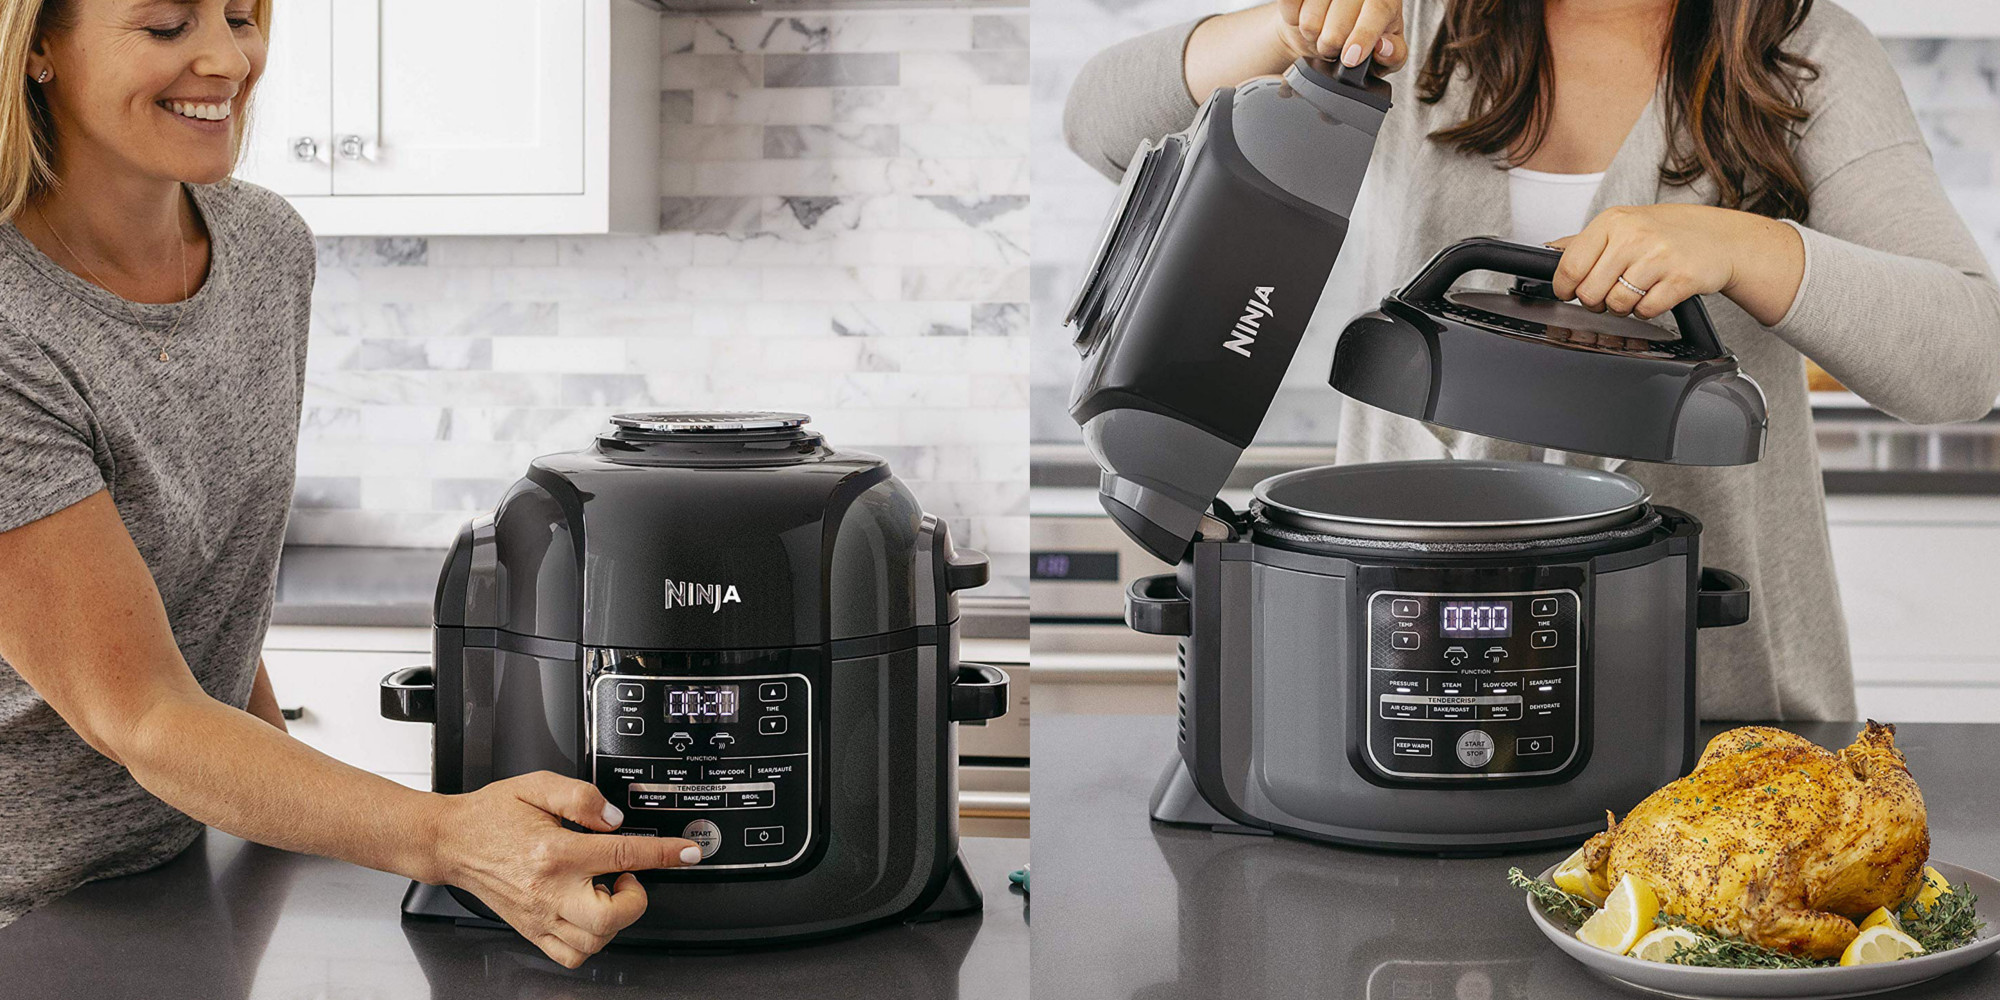 Ninja's 8-quart Foodi Multi-Cooker doubles as an air fryer and is now $80 off: $200 shipped